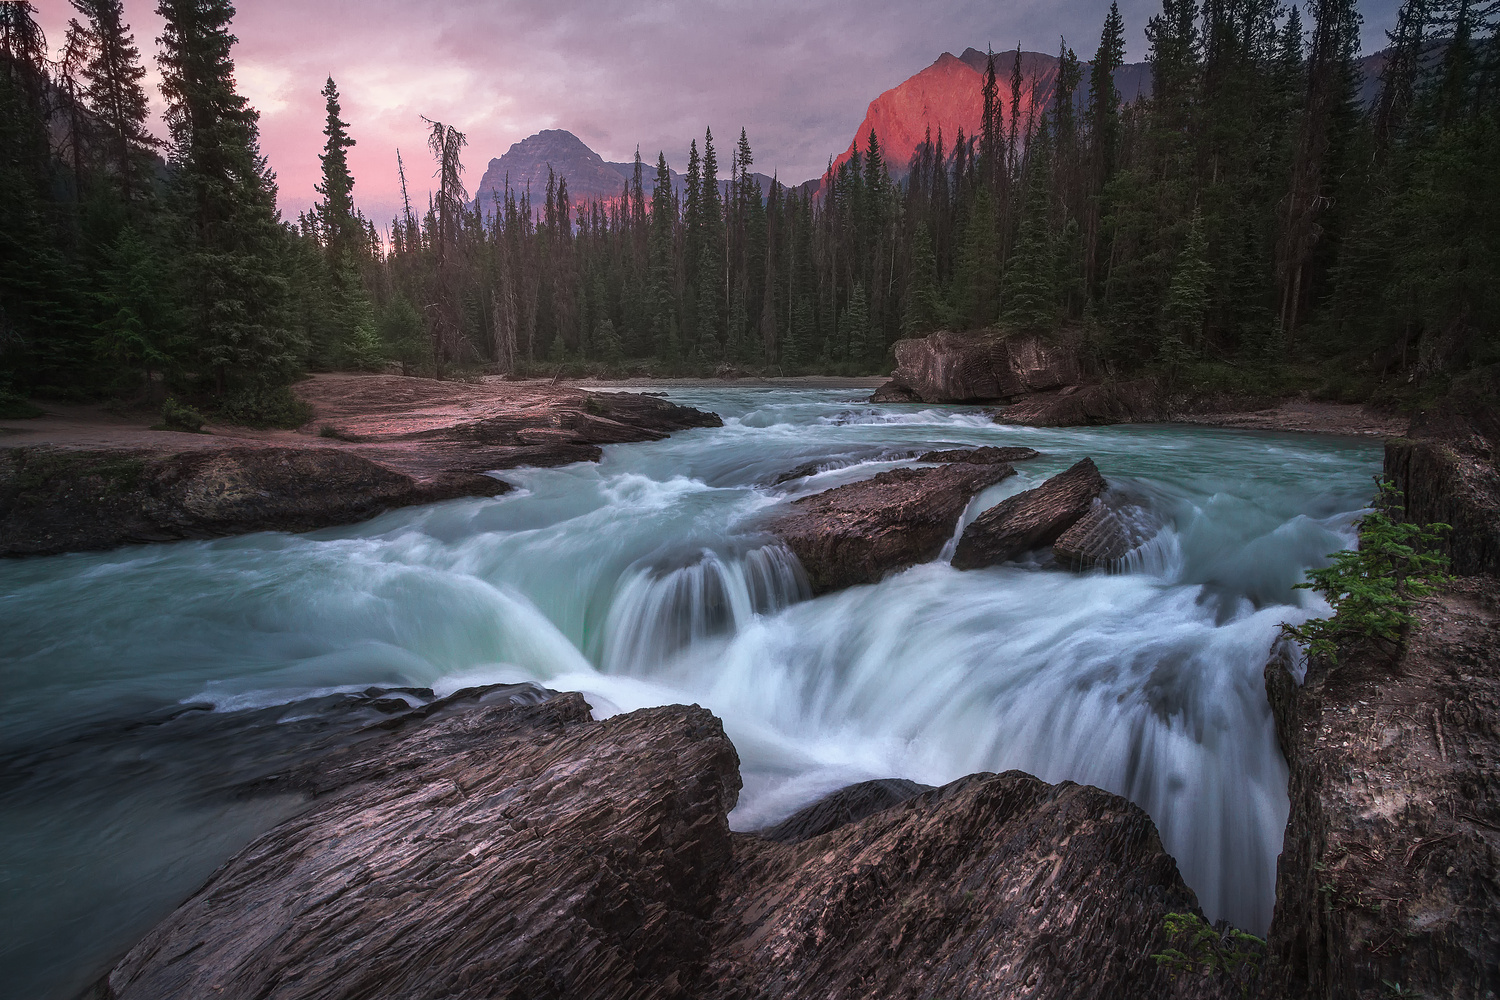 The Natural Bridge by Crystal Provencher